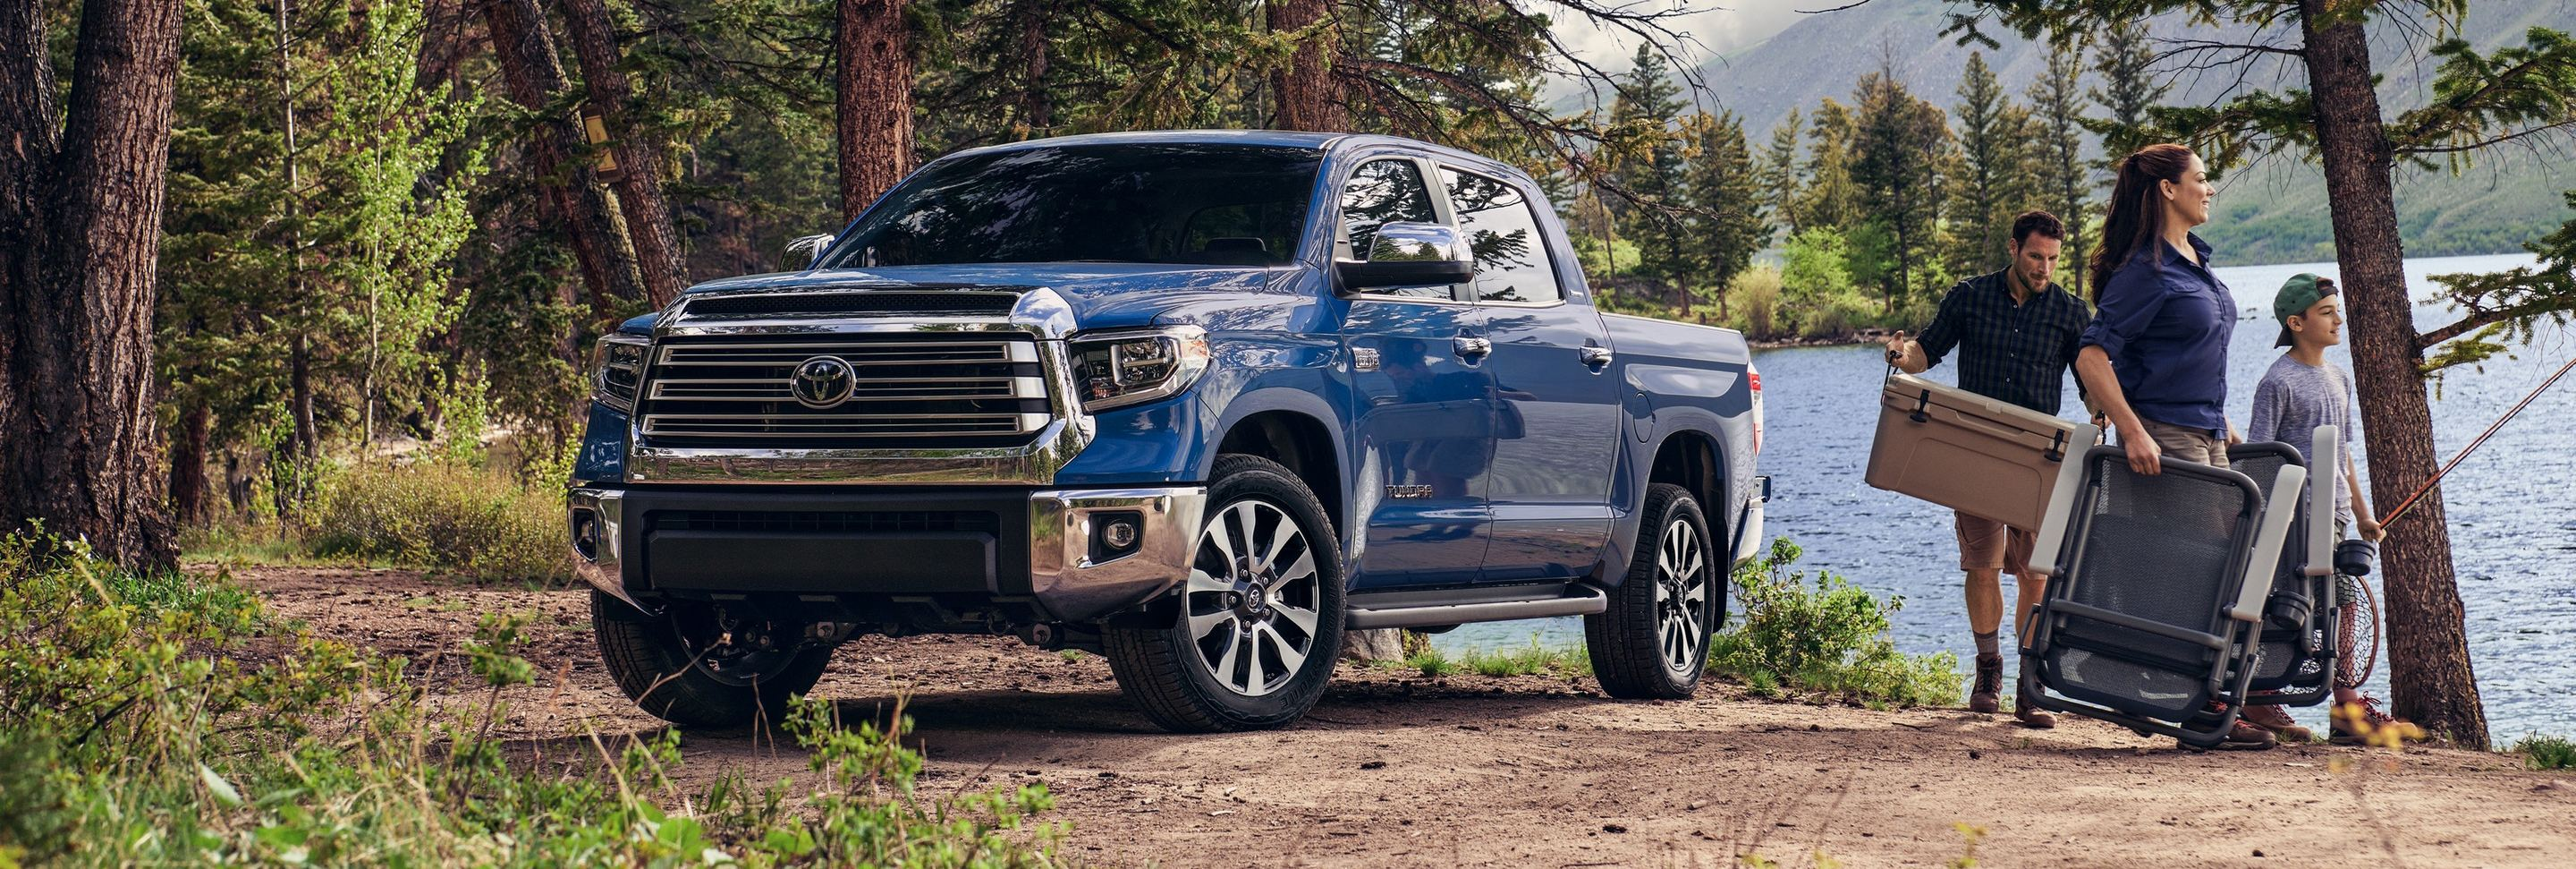 2020 Toyota Tundra for Sale near San Jose, CA